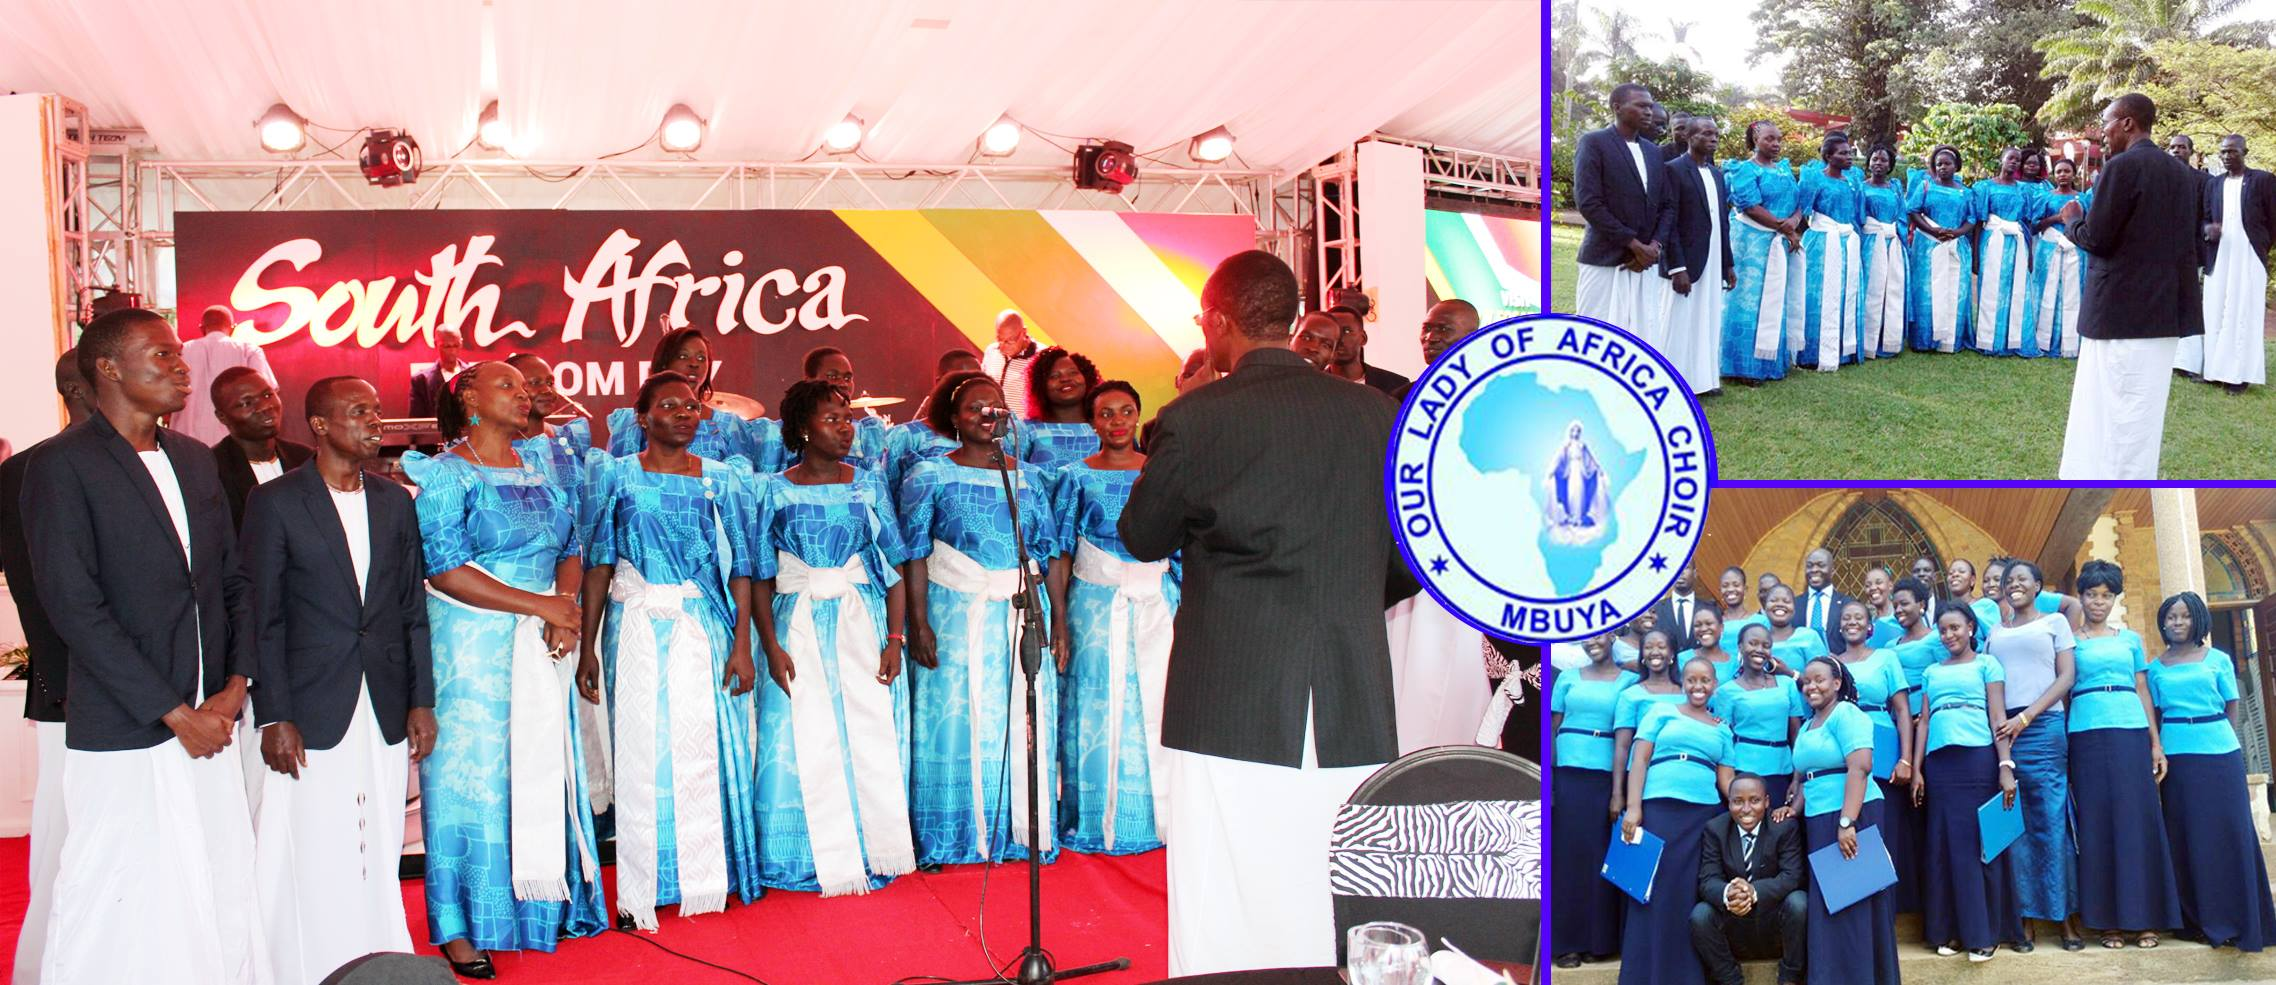 Our Lady of Africa Choir